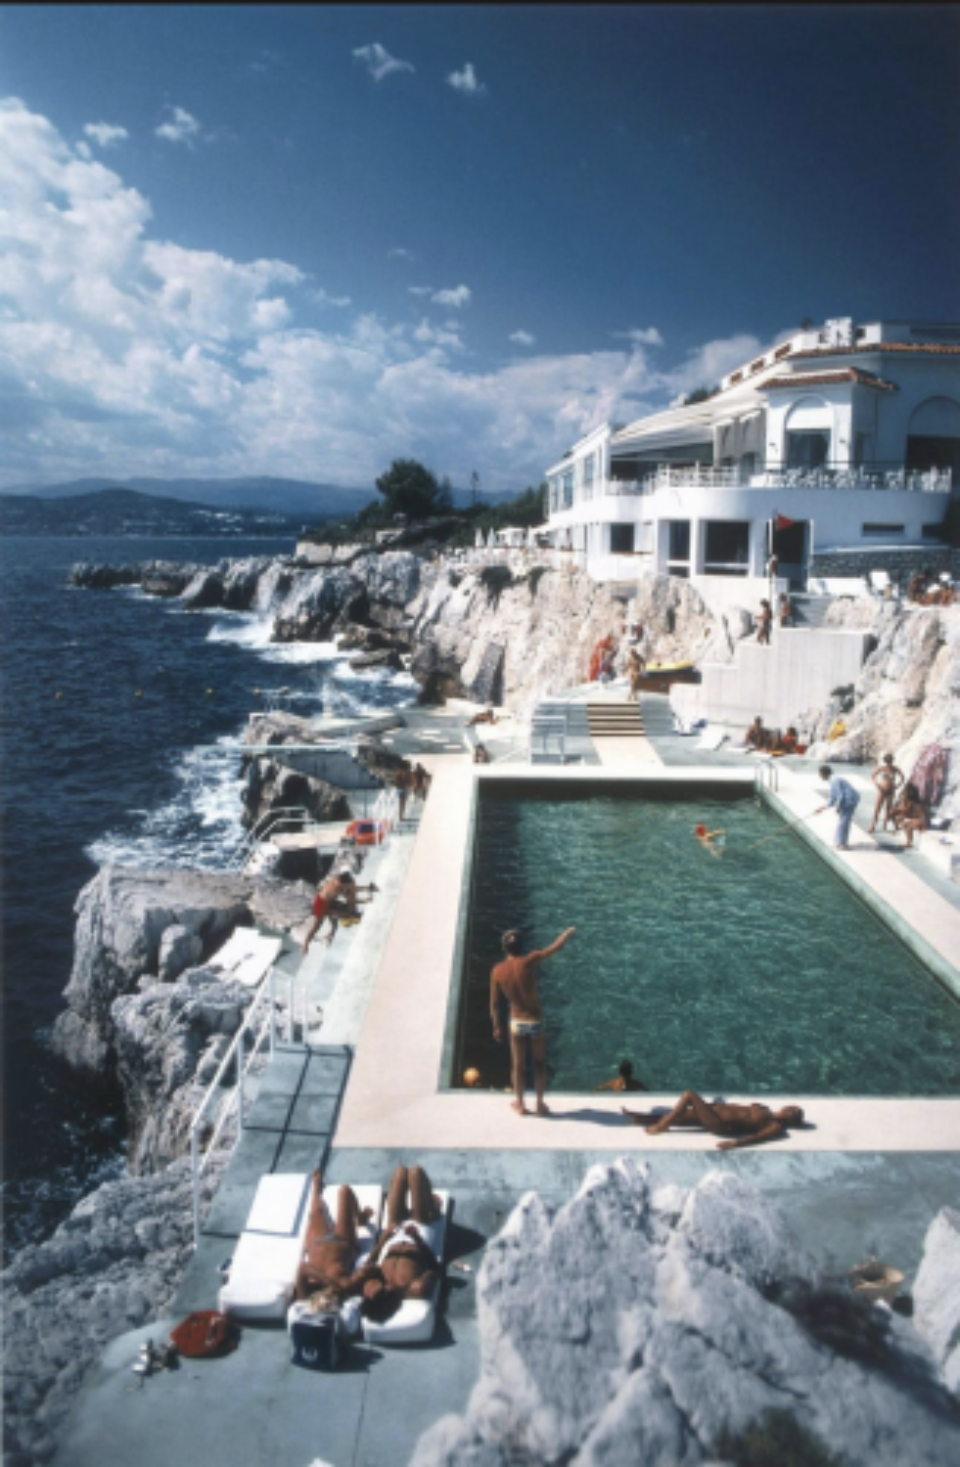 Slim Aarons: Guests by the pool at the Hôtel du Cap-Eden-Roc, Antibes, France